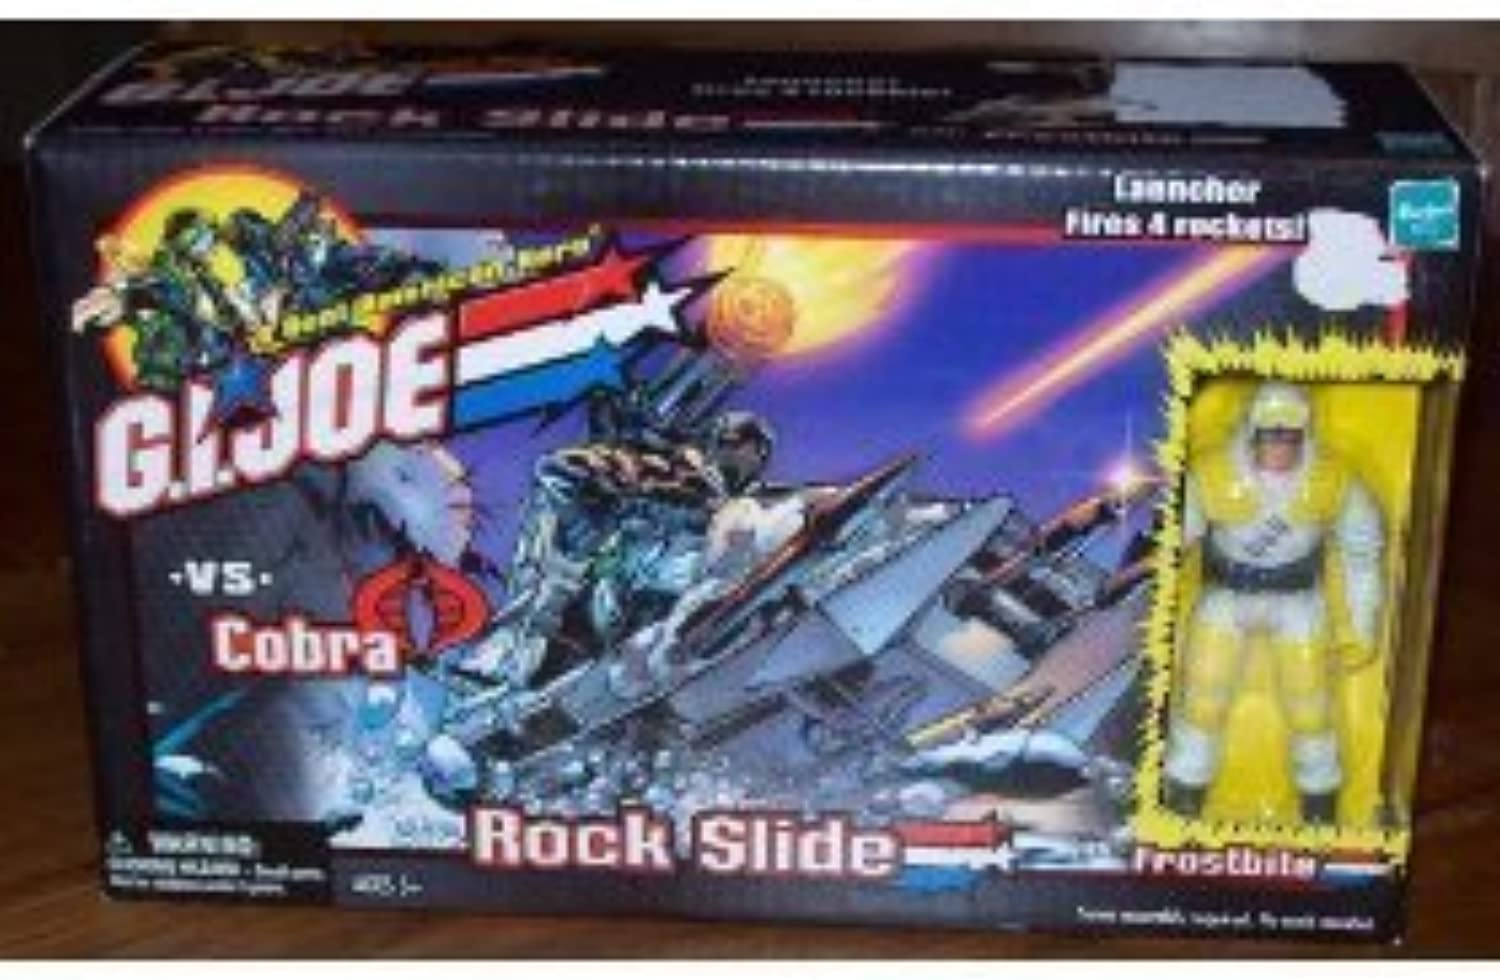 G.I. JOE vs. Rock Slide with Frostbite by G. I. Joe